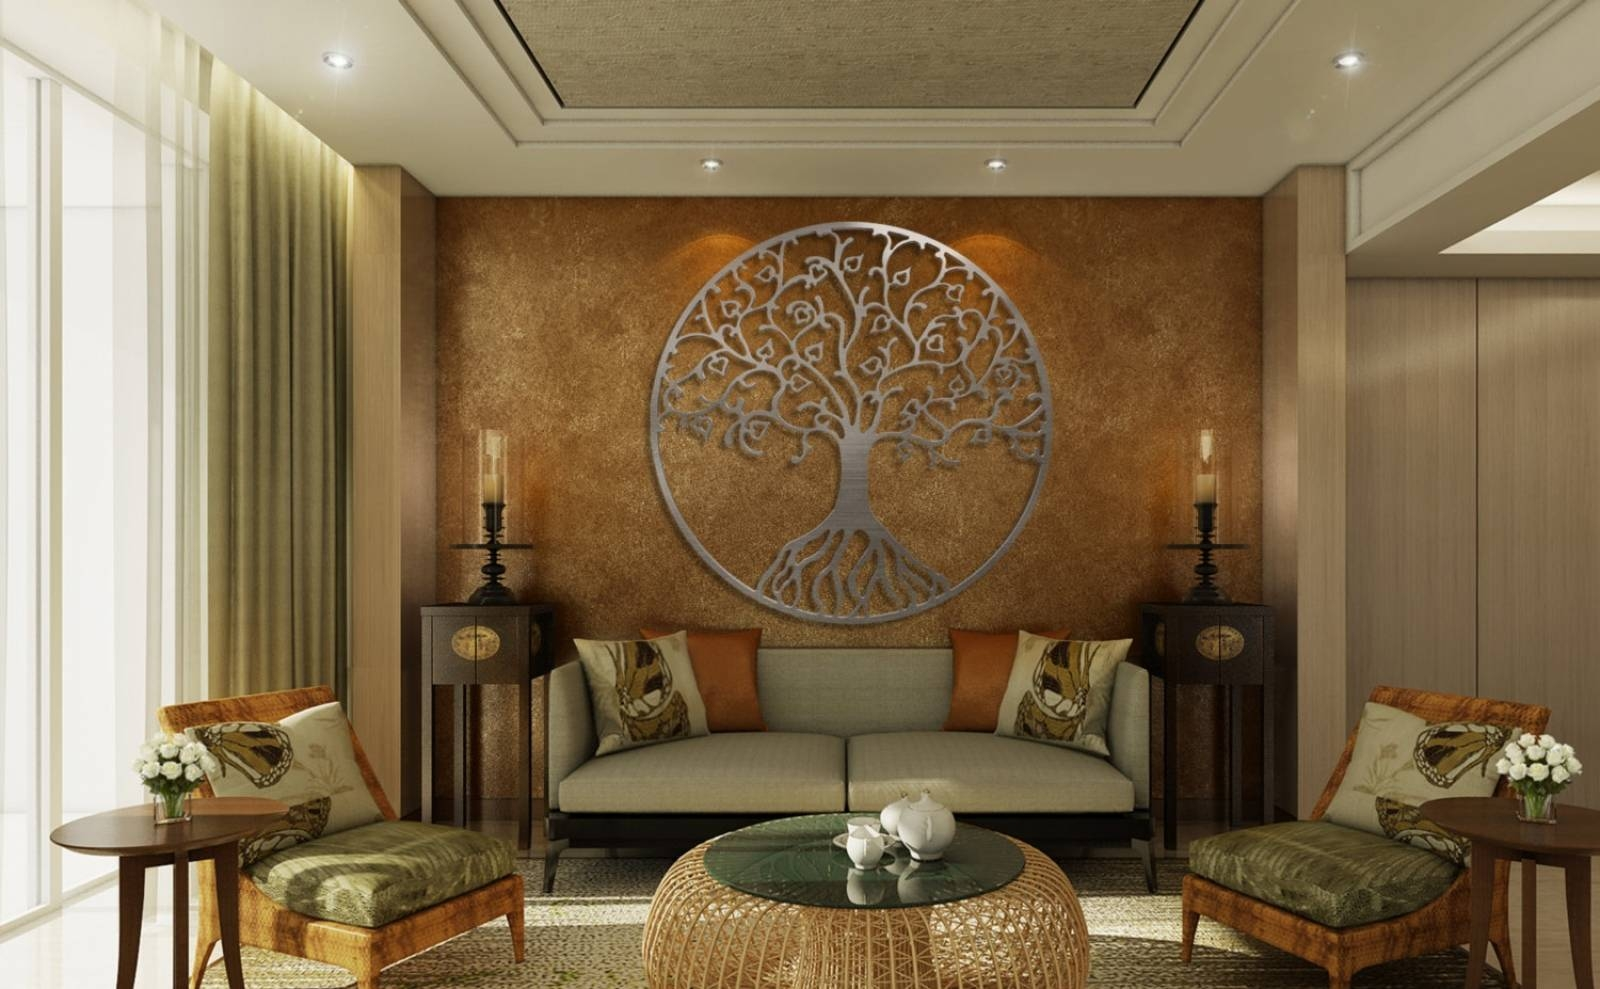 Tree Of Life 3D Metal Wall Art Sculpture (Circular) | Arte & Metal Throughout Most Popular Circular Metal Wall Art (View 9 of 20)